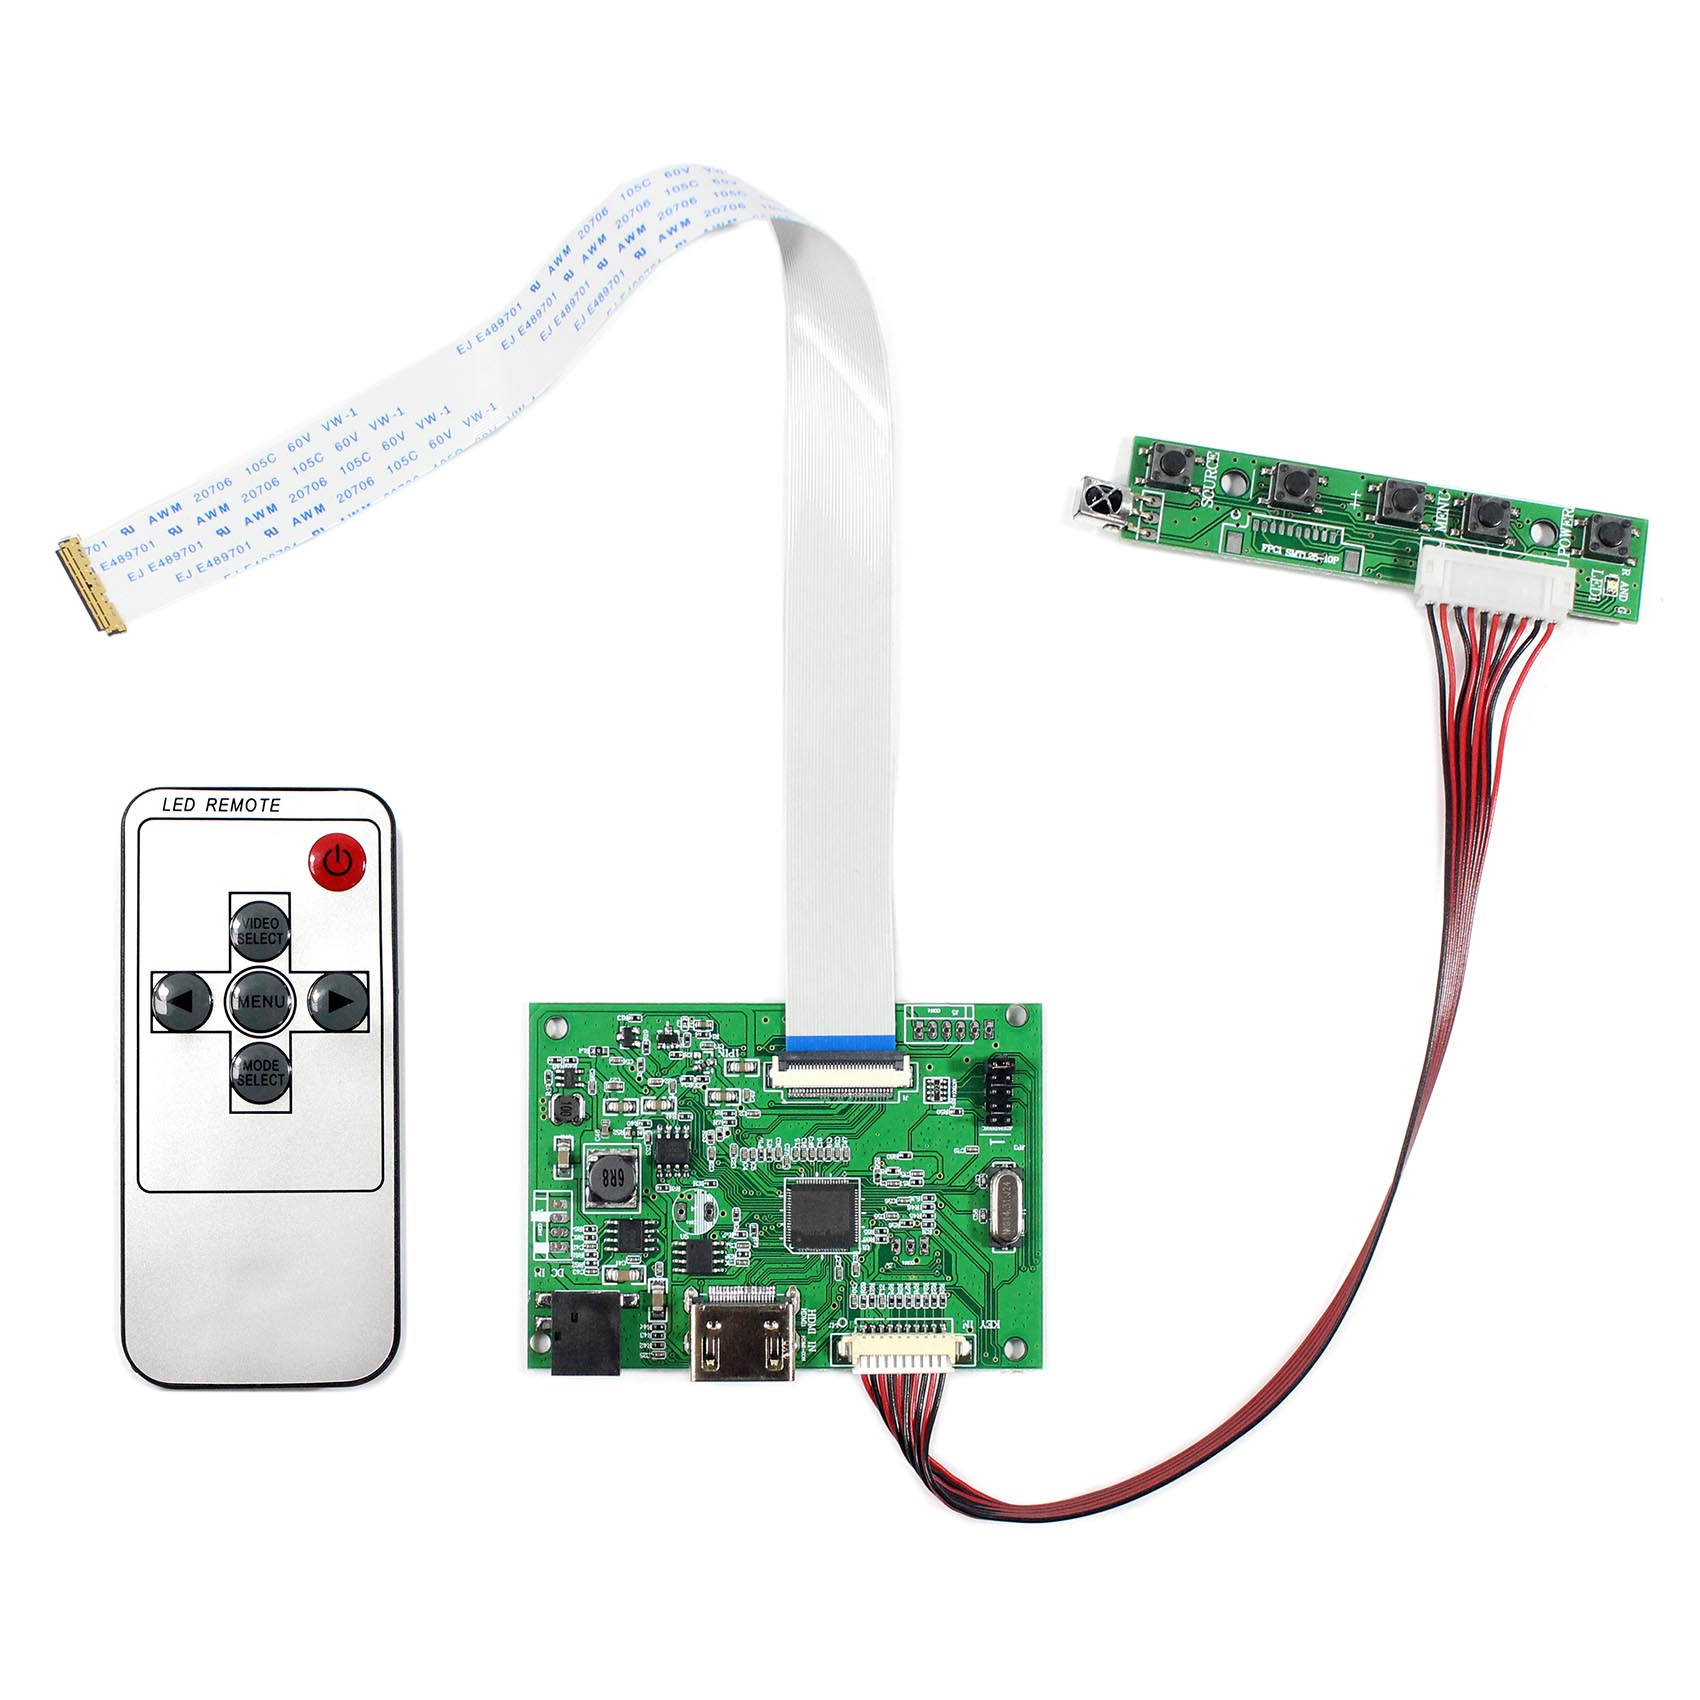 eDP HDMI Audio LCD Controller Board for LP156WF4-SPB1 LP156WF6-SPA1 1920x1080